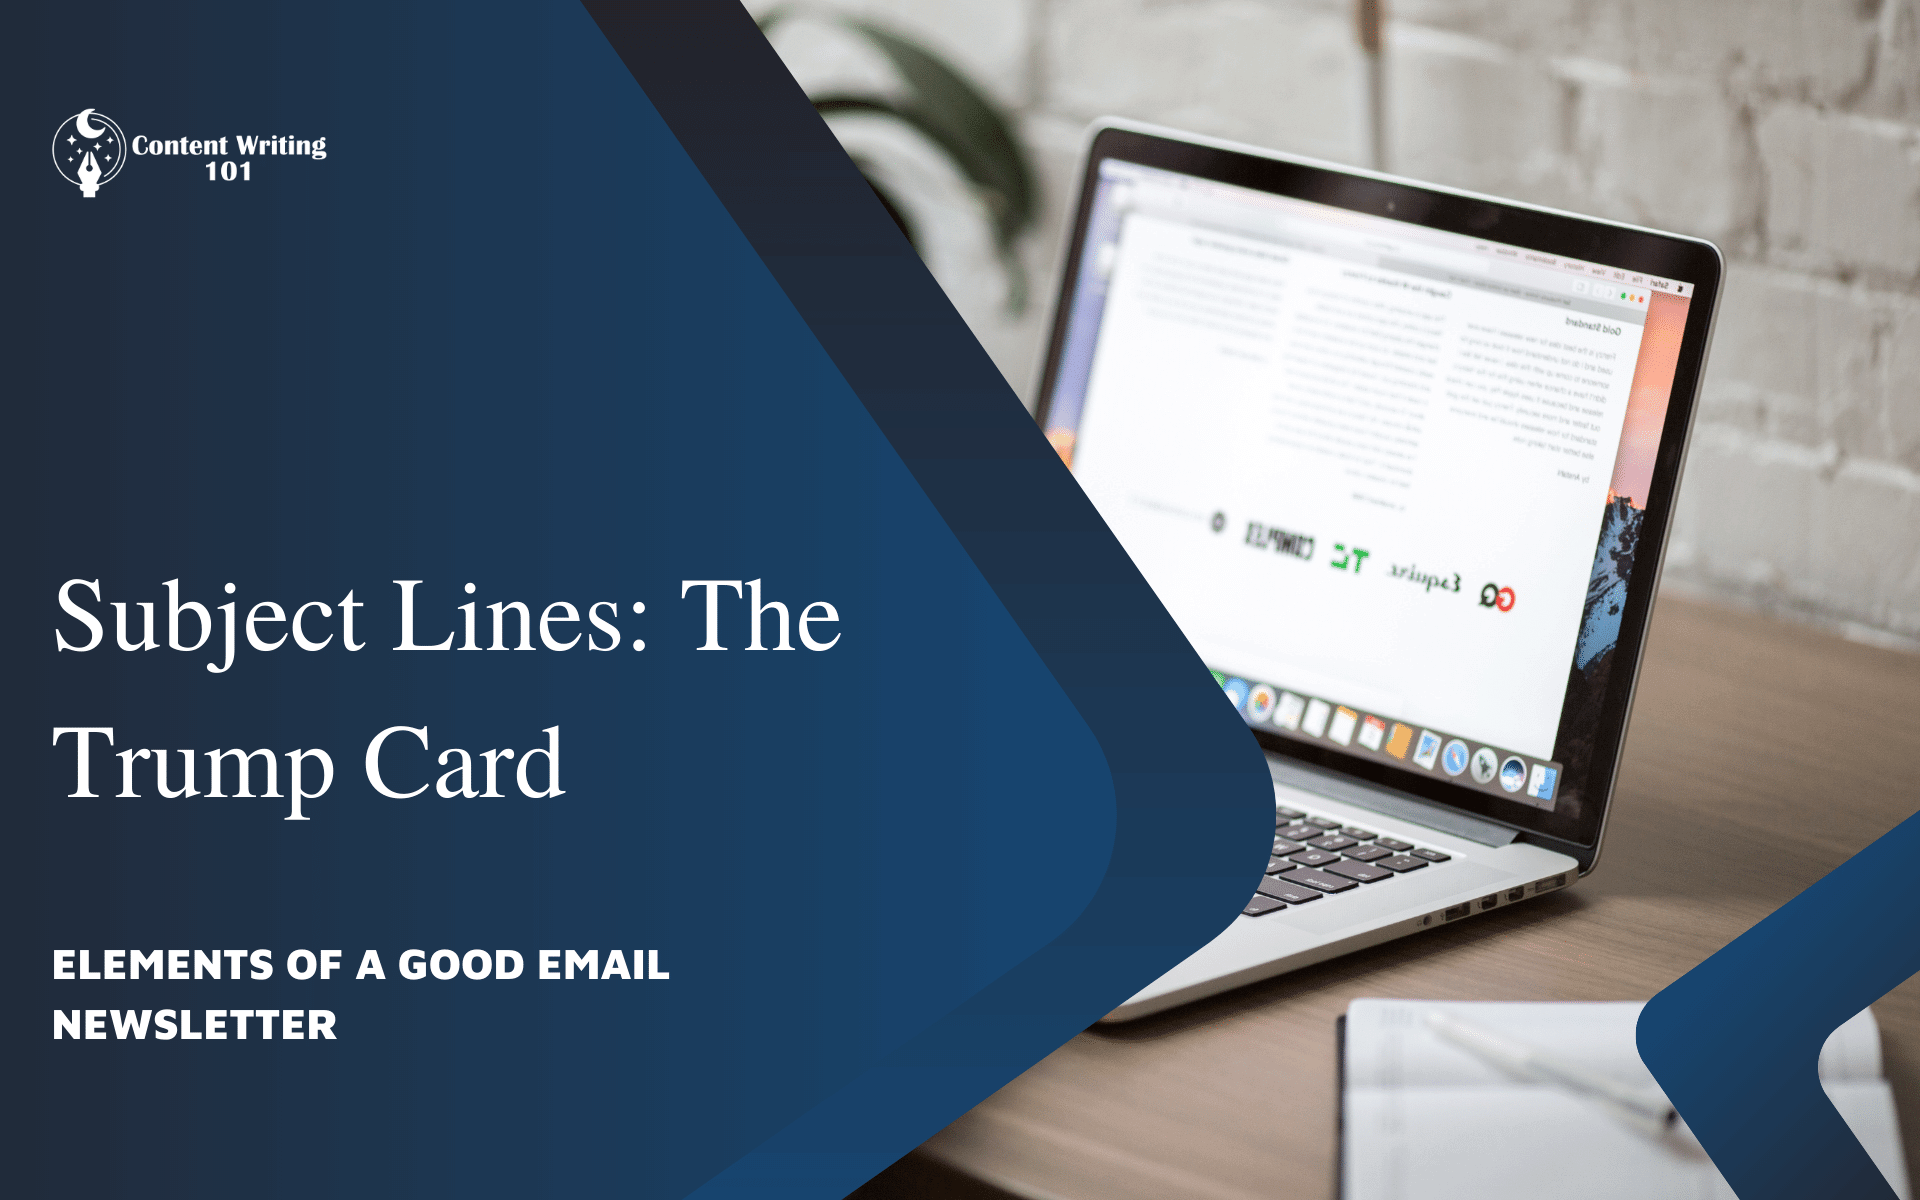 1. Subject Lines: The Trump Card